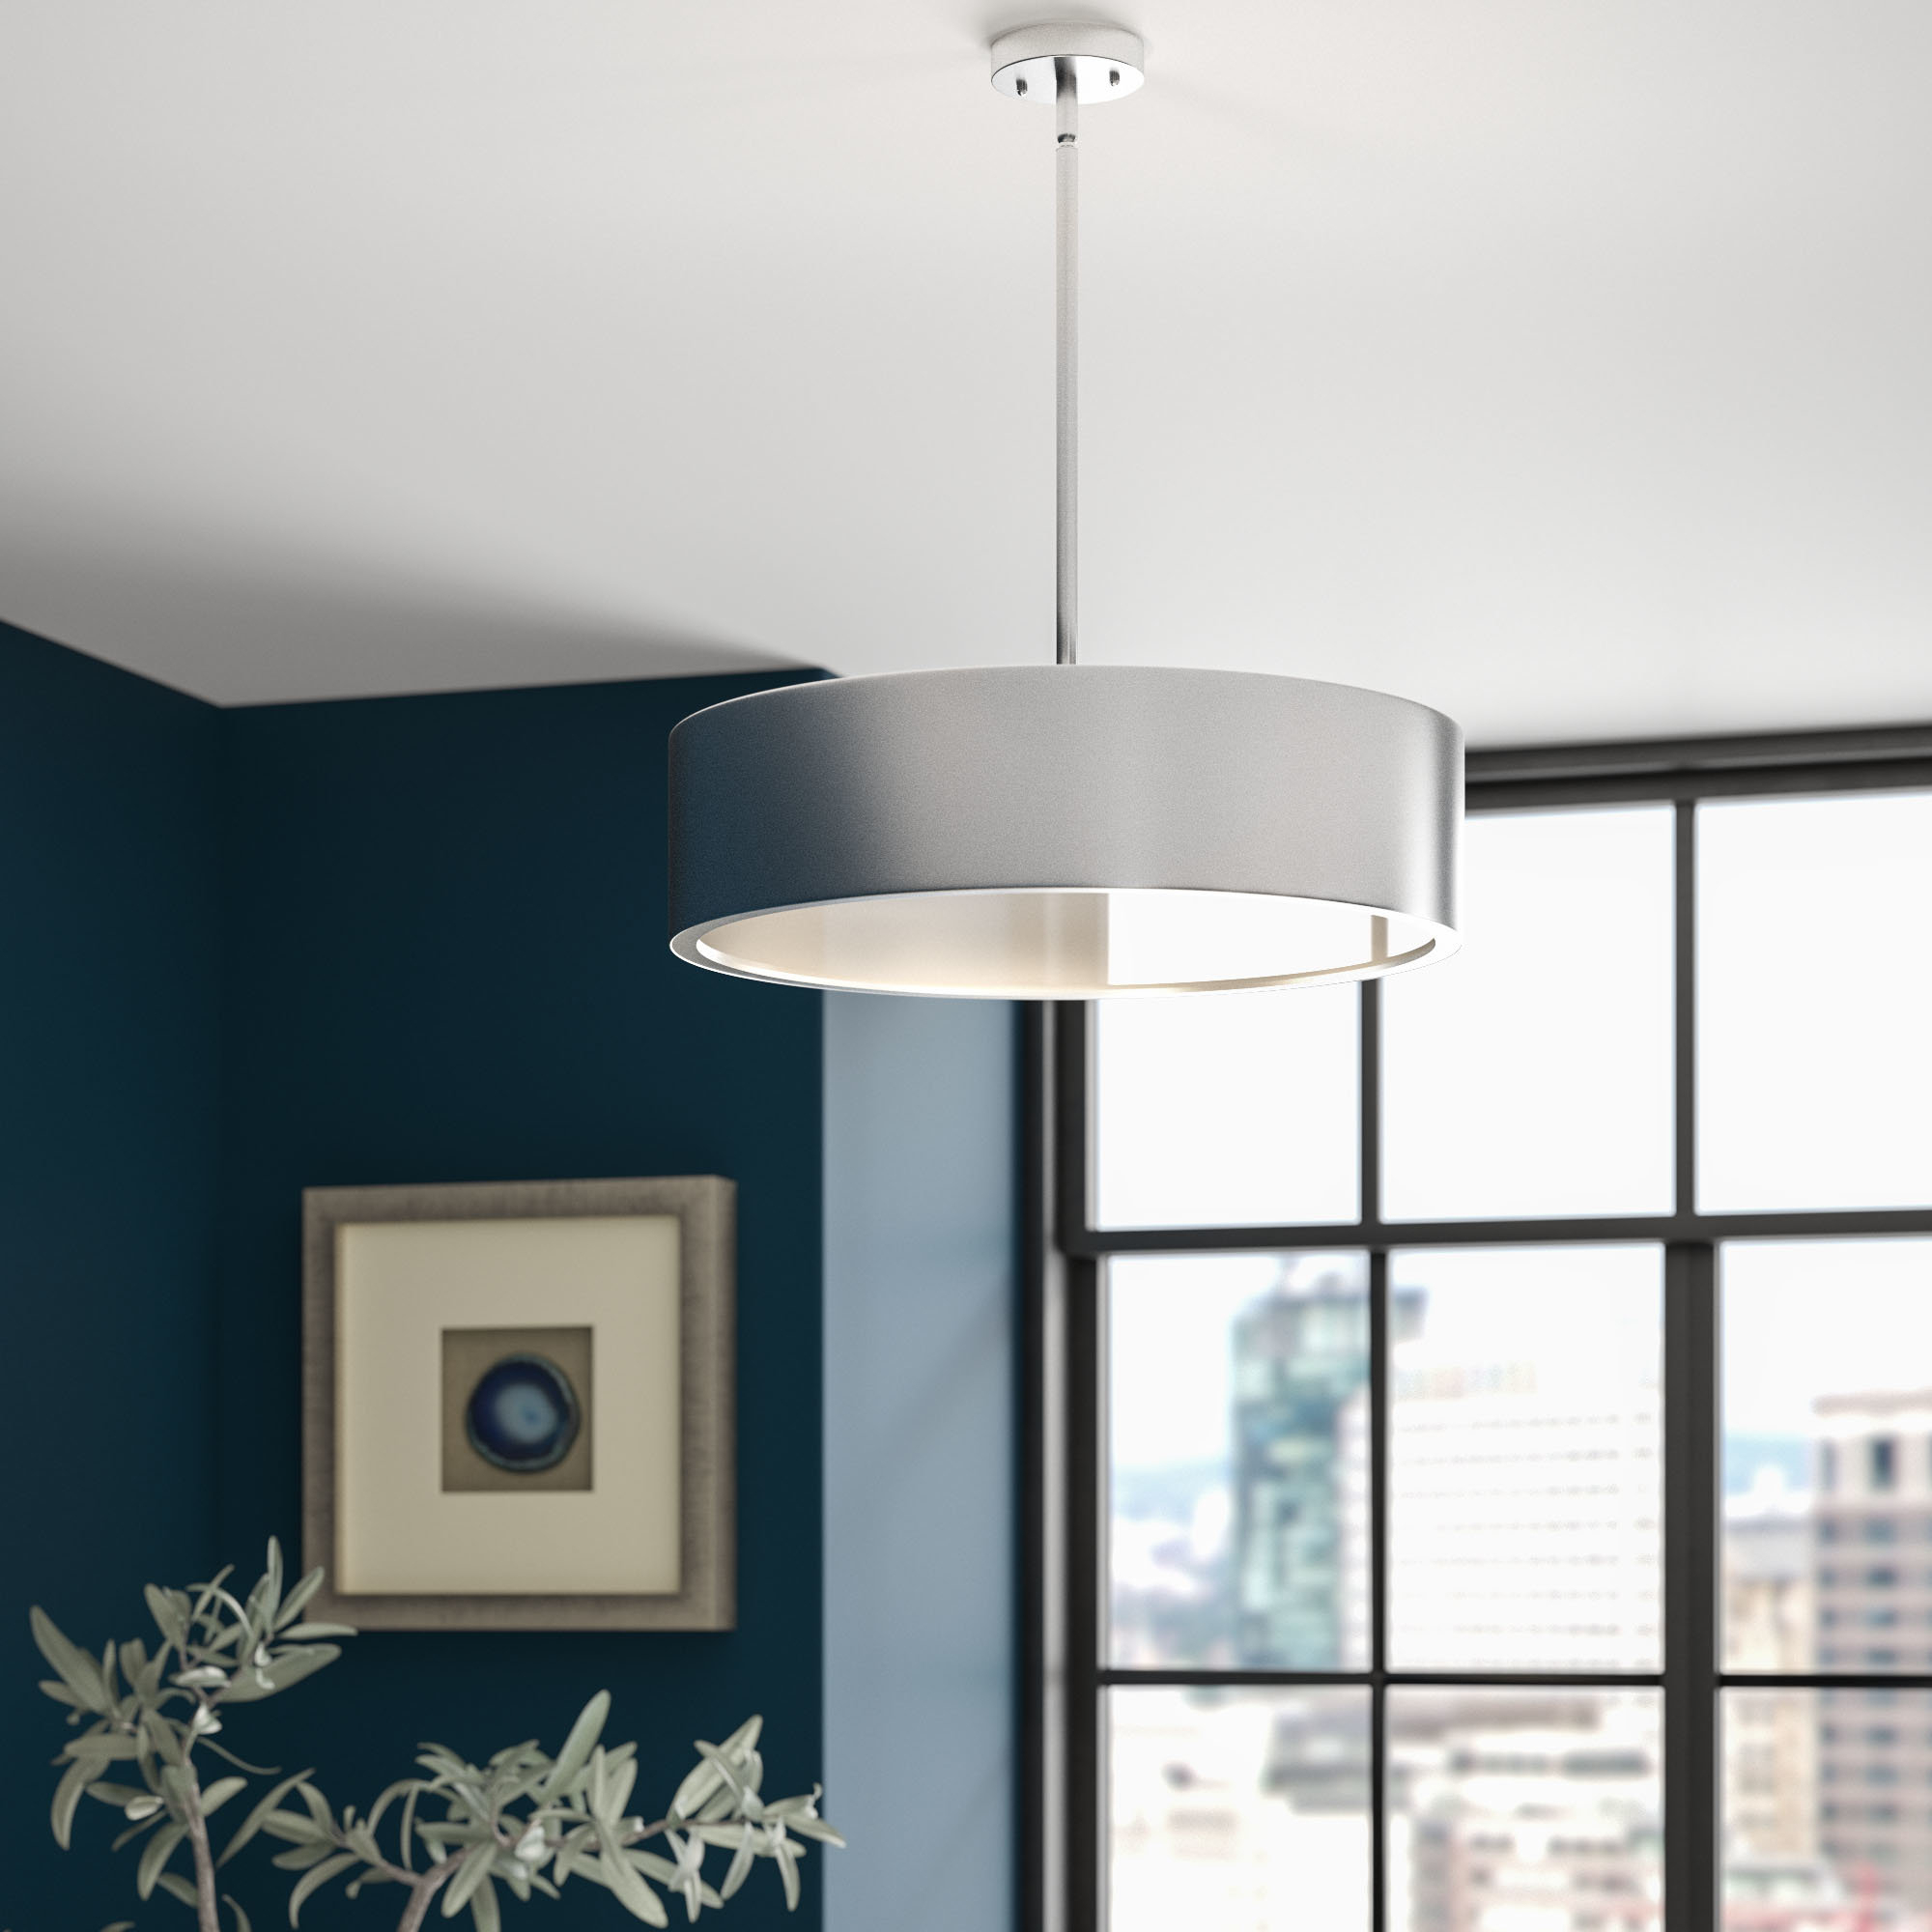 Radtke 3 Light Single Drum Pendant With Friedland 3 Light Drum Tiered Pendants (View 9 of 30)